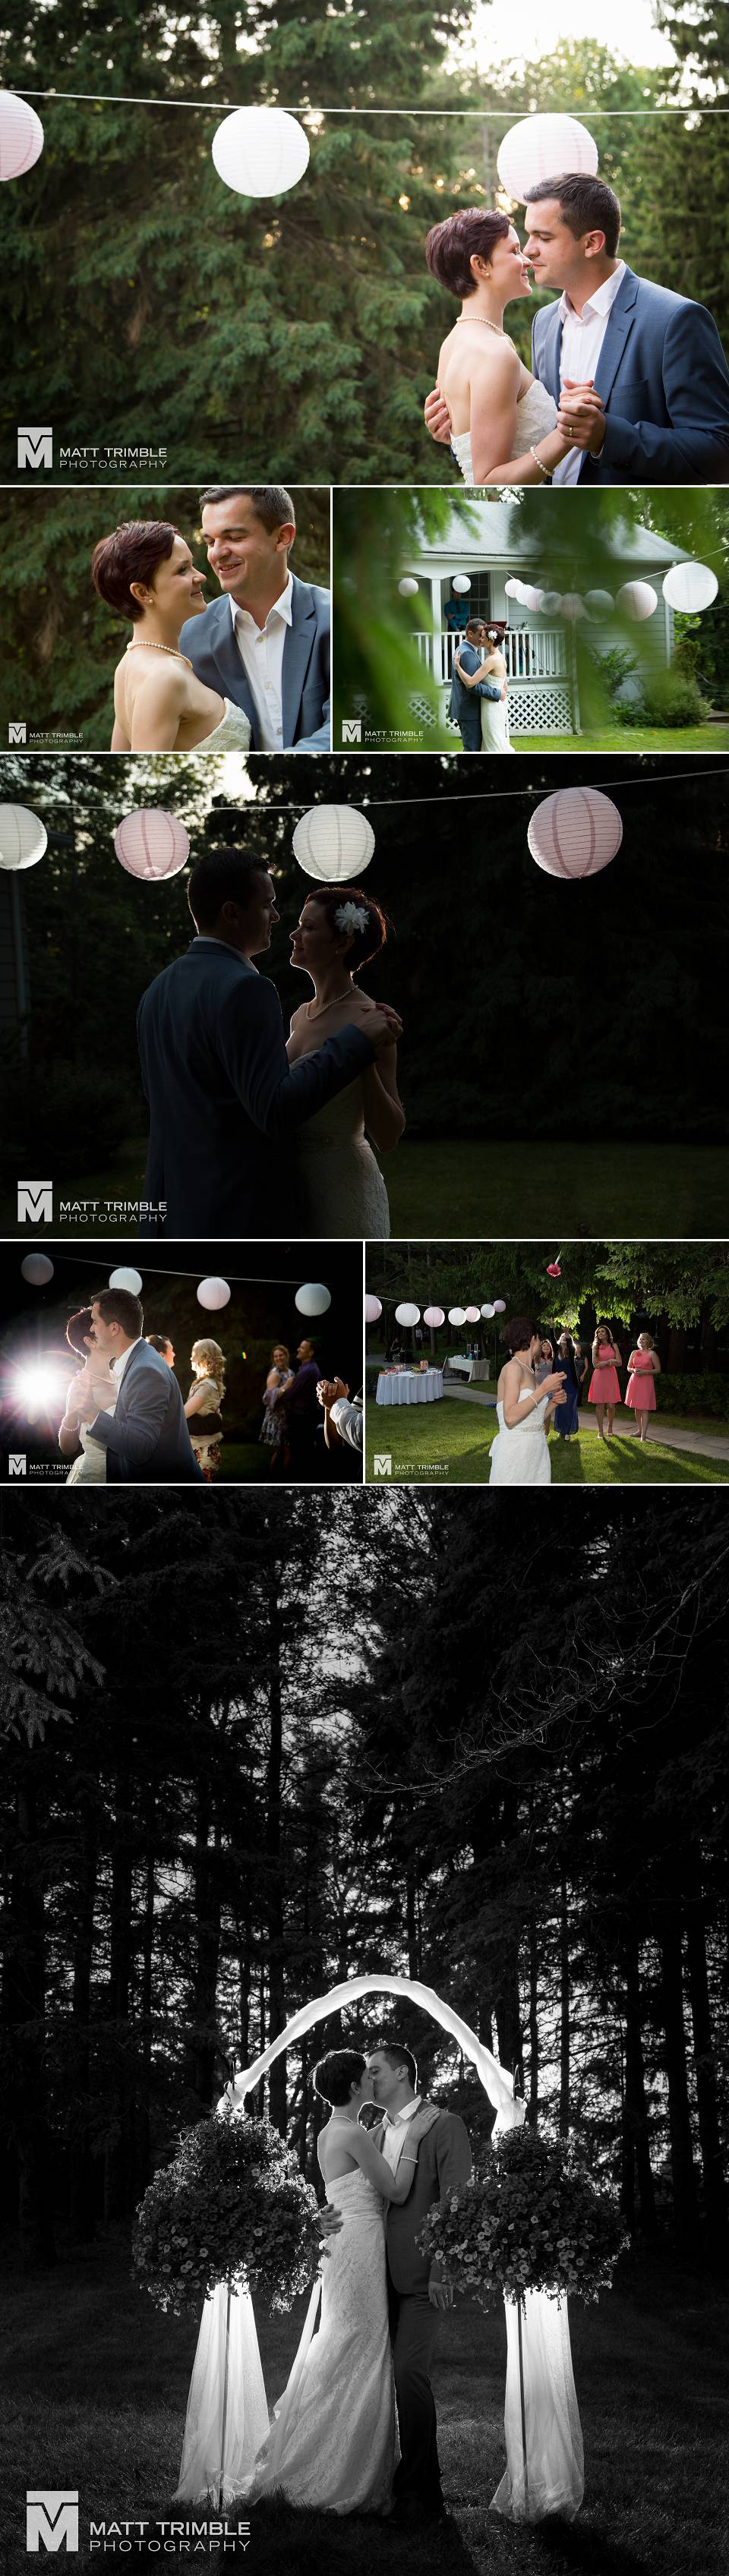 firstdance and outdoor wedding reception photos